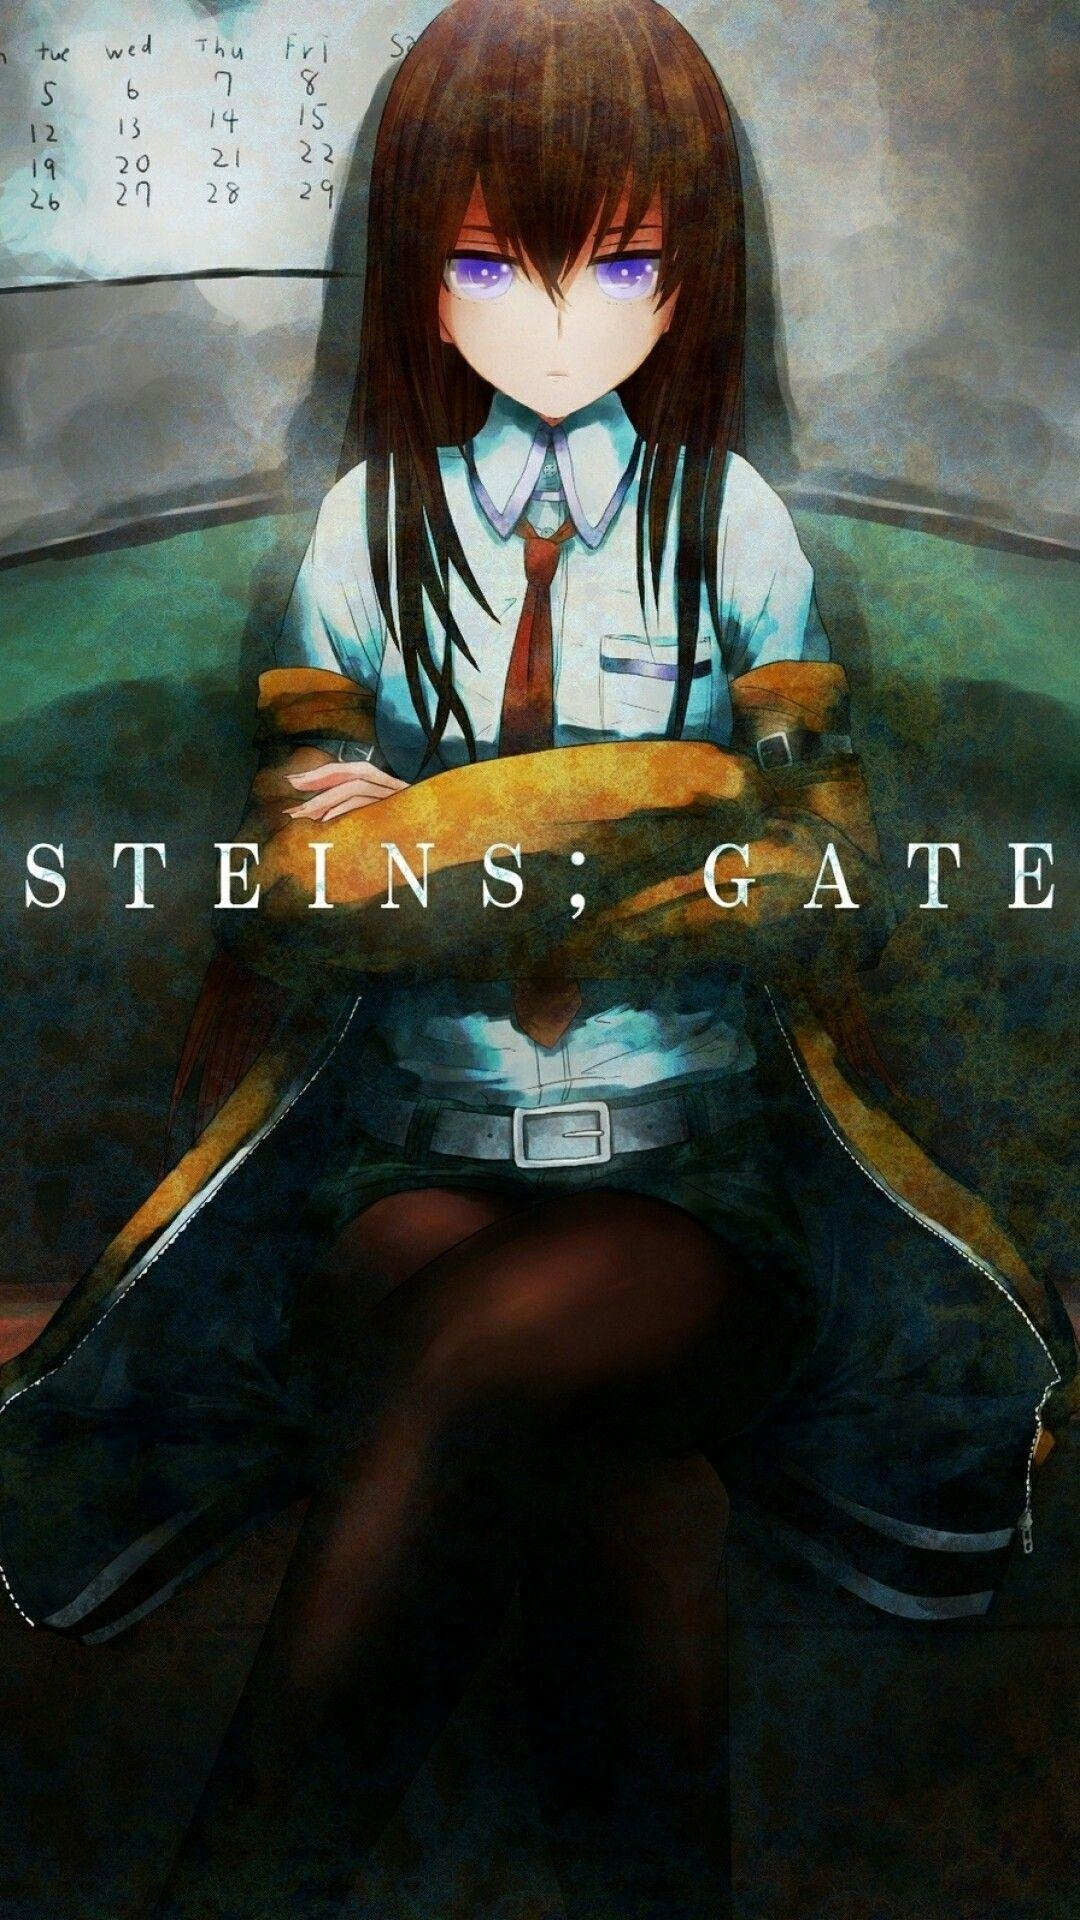 steins gate | Anime | Steins gate 0, Gate, Anime